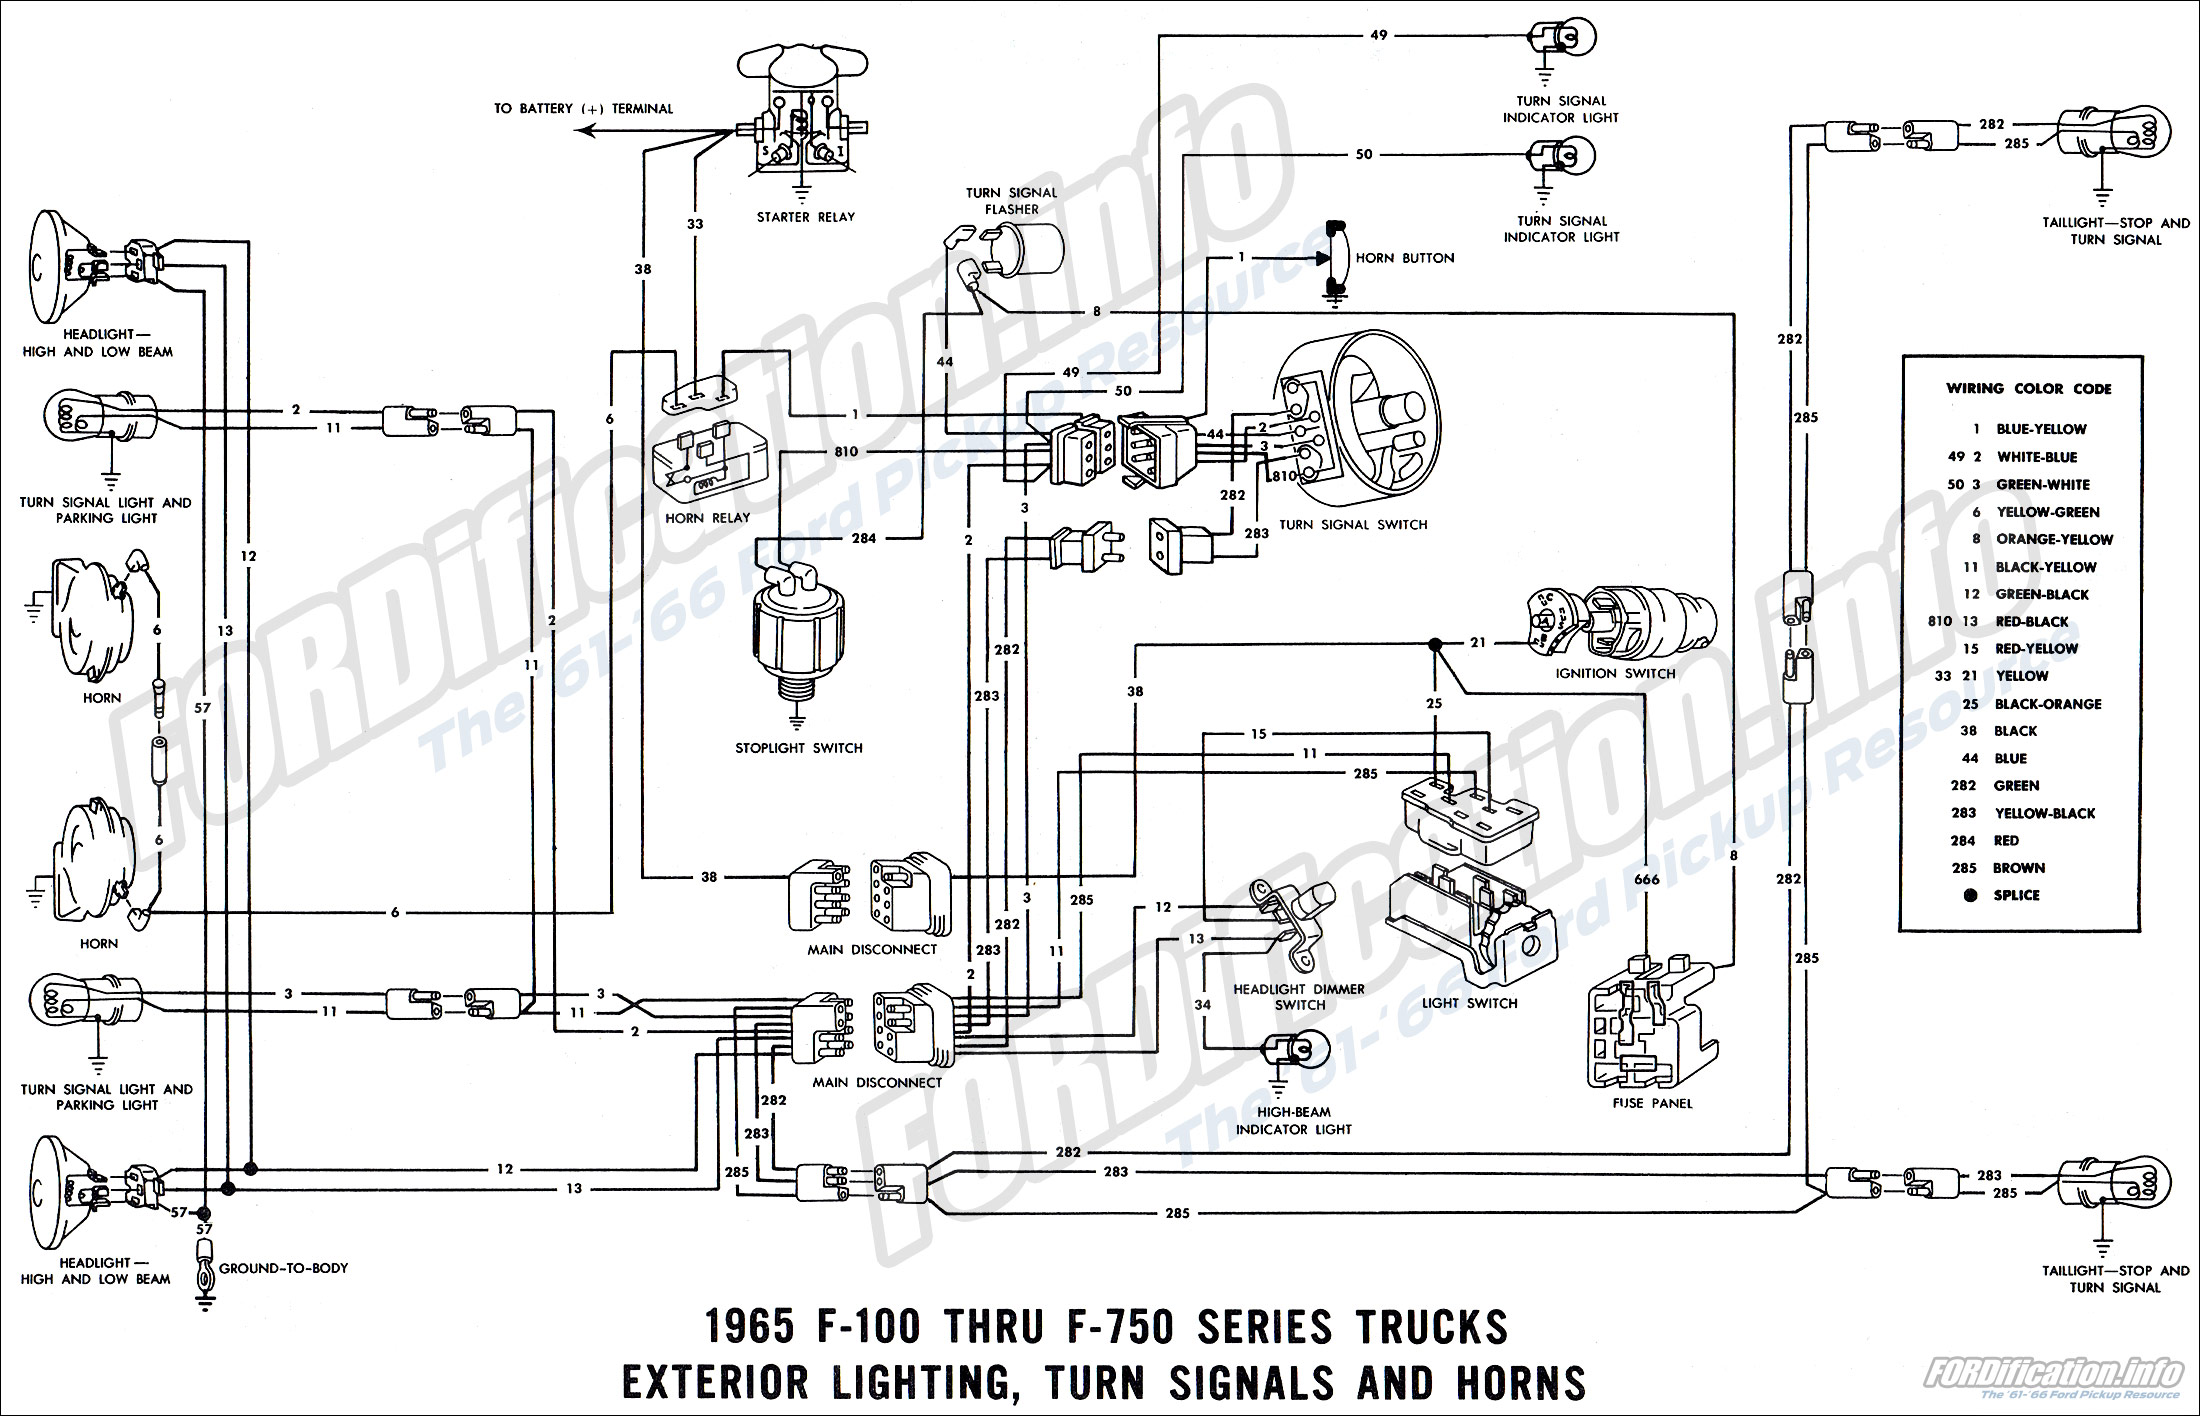 1970 Ford F100 Wiring Diagram Data For 1968 Mustang 1969 Alternator 1966 F 250